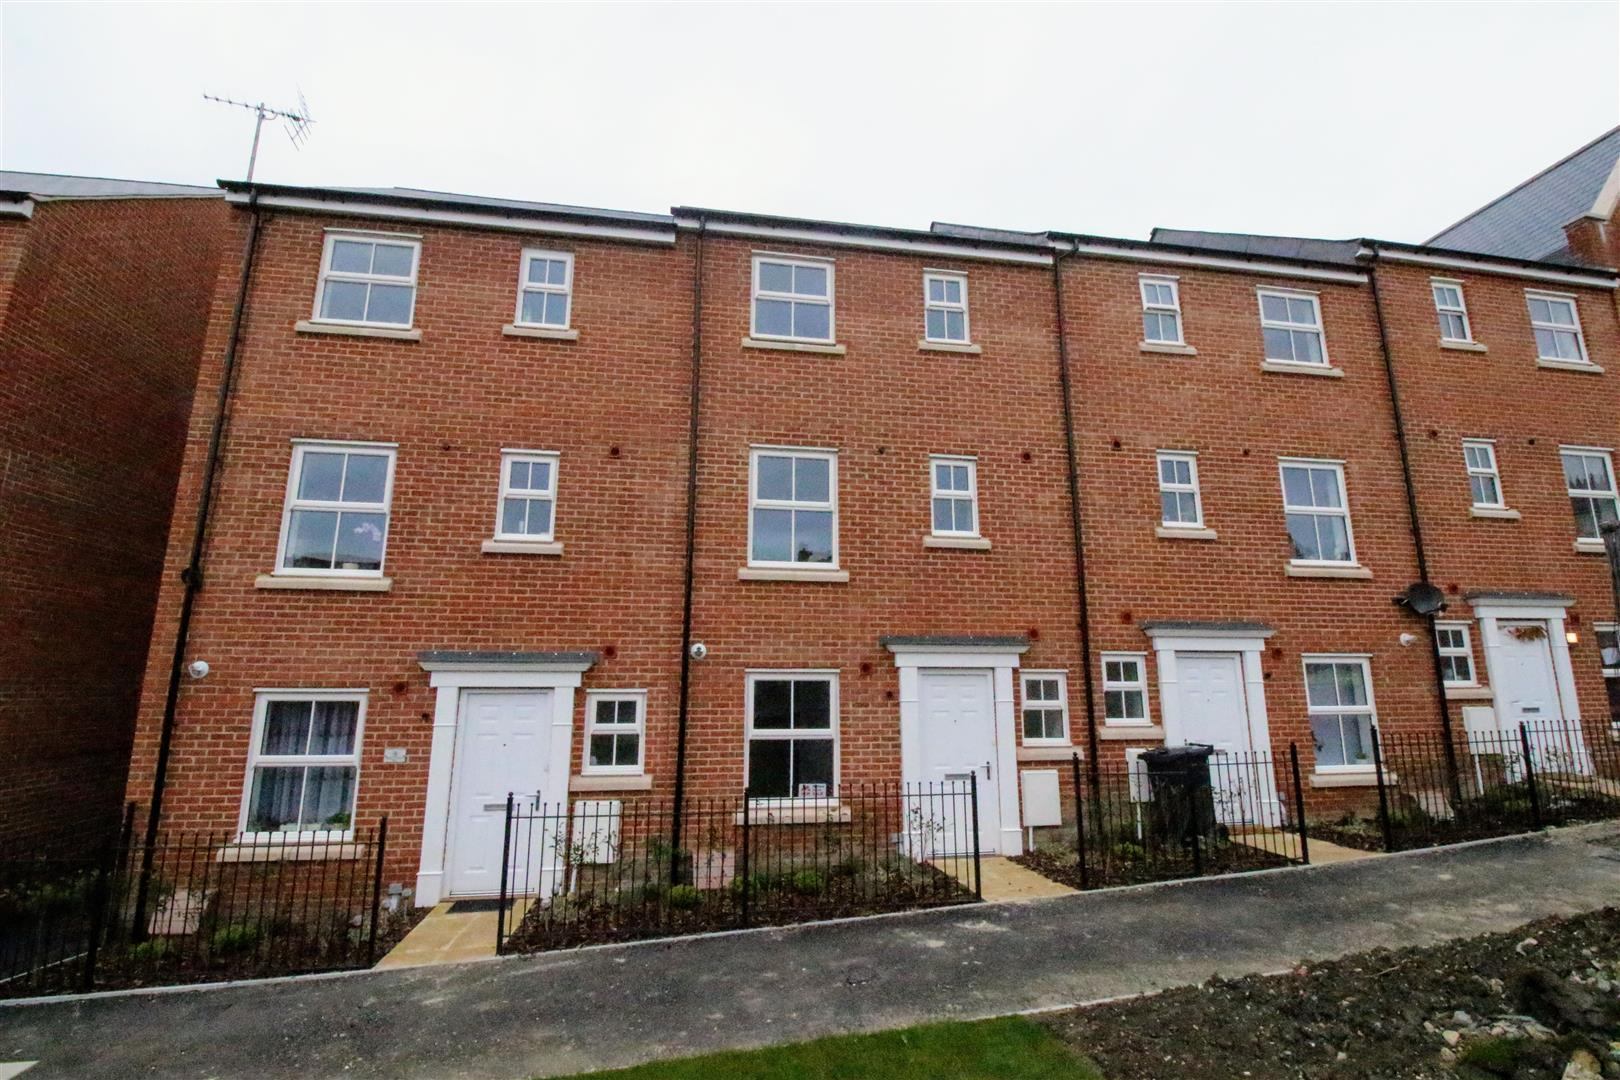 4 Bedrooms Terraced House for sale in Vaughan Williams Way, Redhouse, Swindon